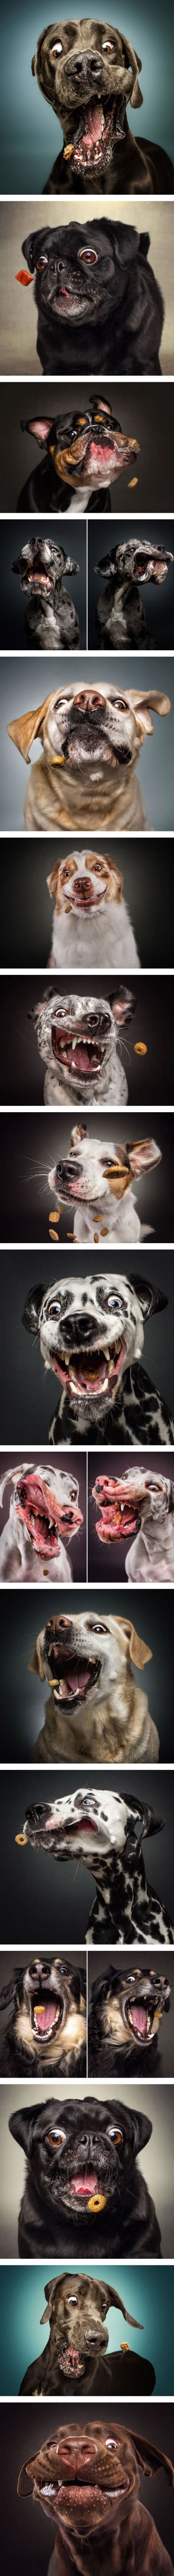 Expressions of Dogs Catching Treats In Mid-Air (By Christian Vieler-Kircher), art, photography #dog